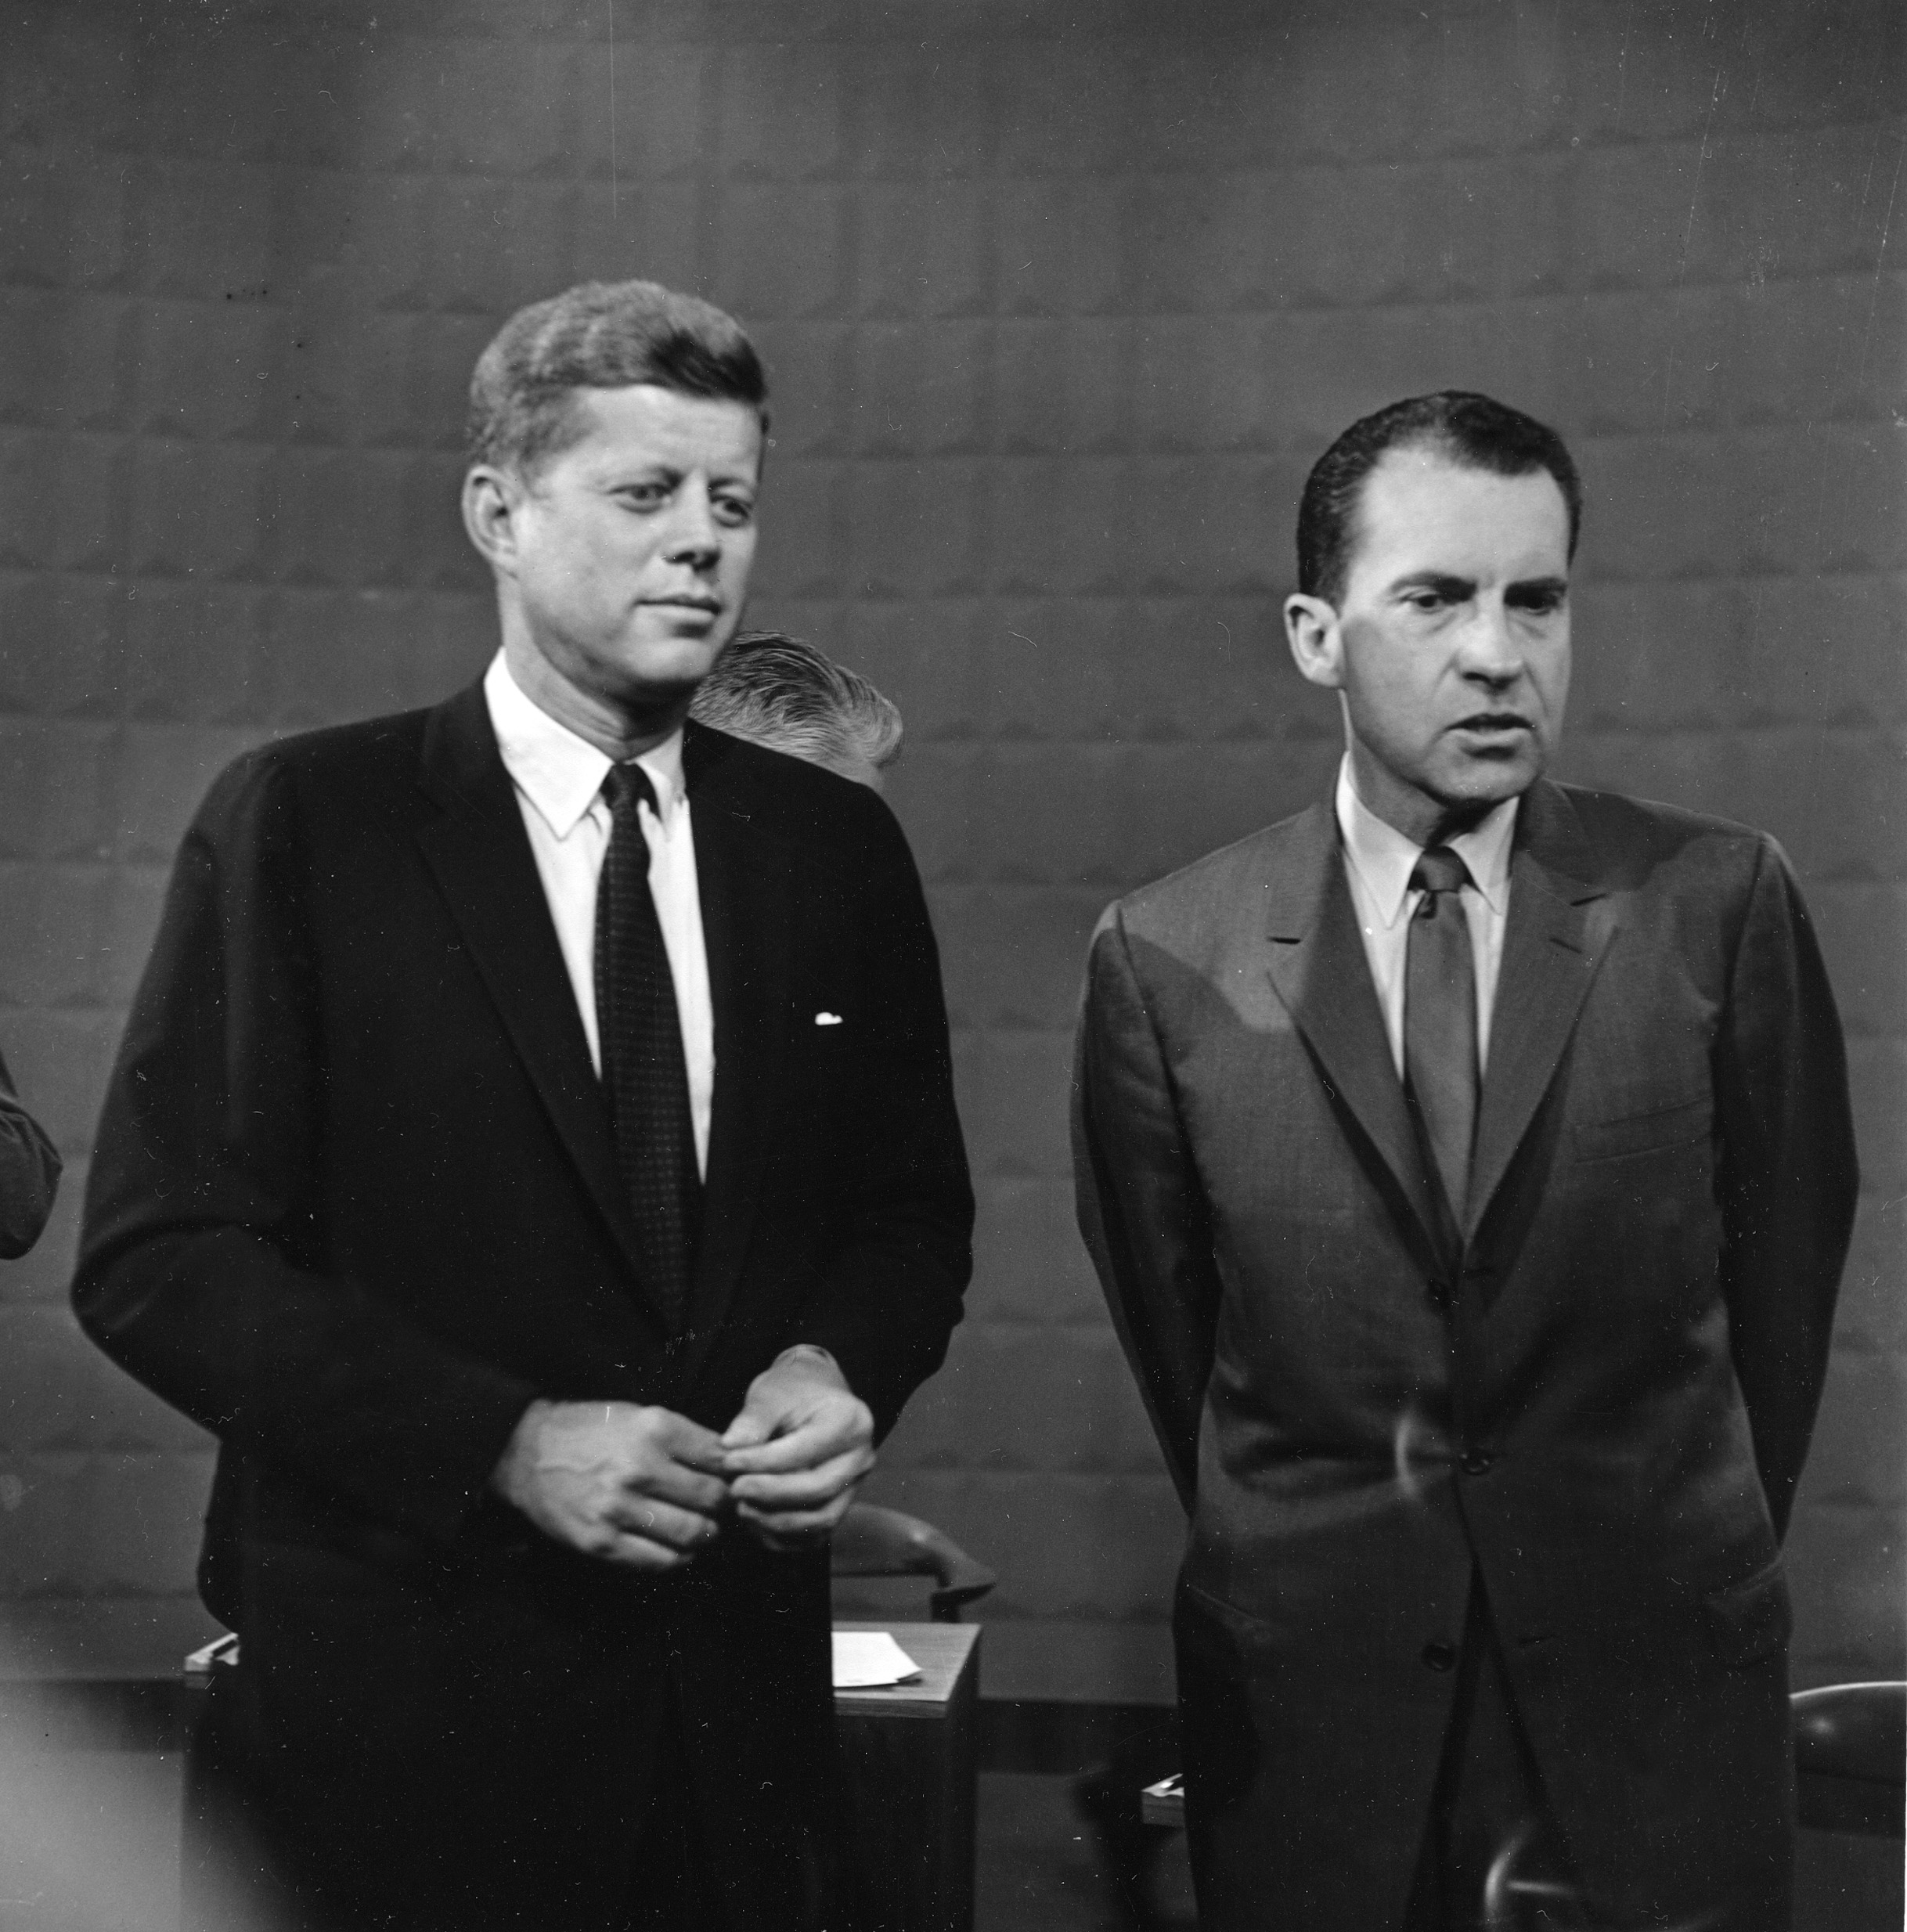 the importance of appearance in john f kennedys victory during the presidential election September 26 marks the fiftieth anniversary of the first of four debates between senator john f kennedy presidential nominee since john kennedy's election.